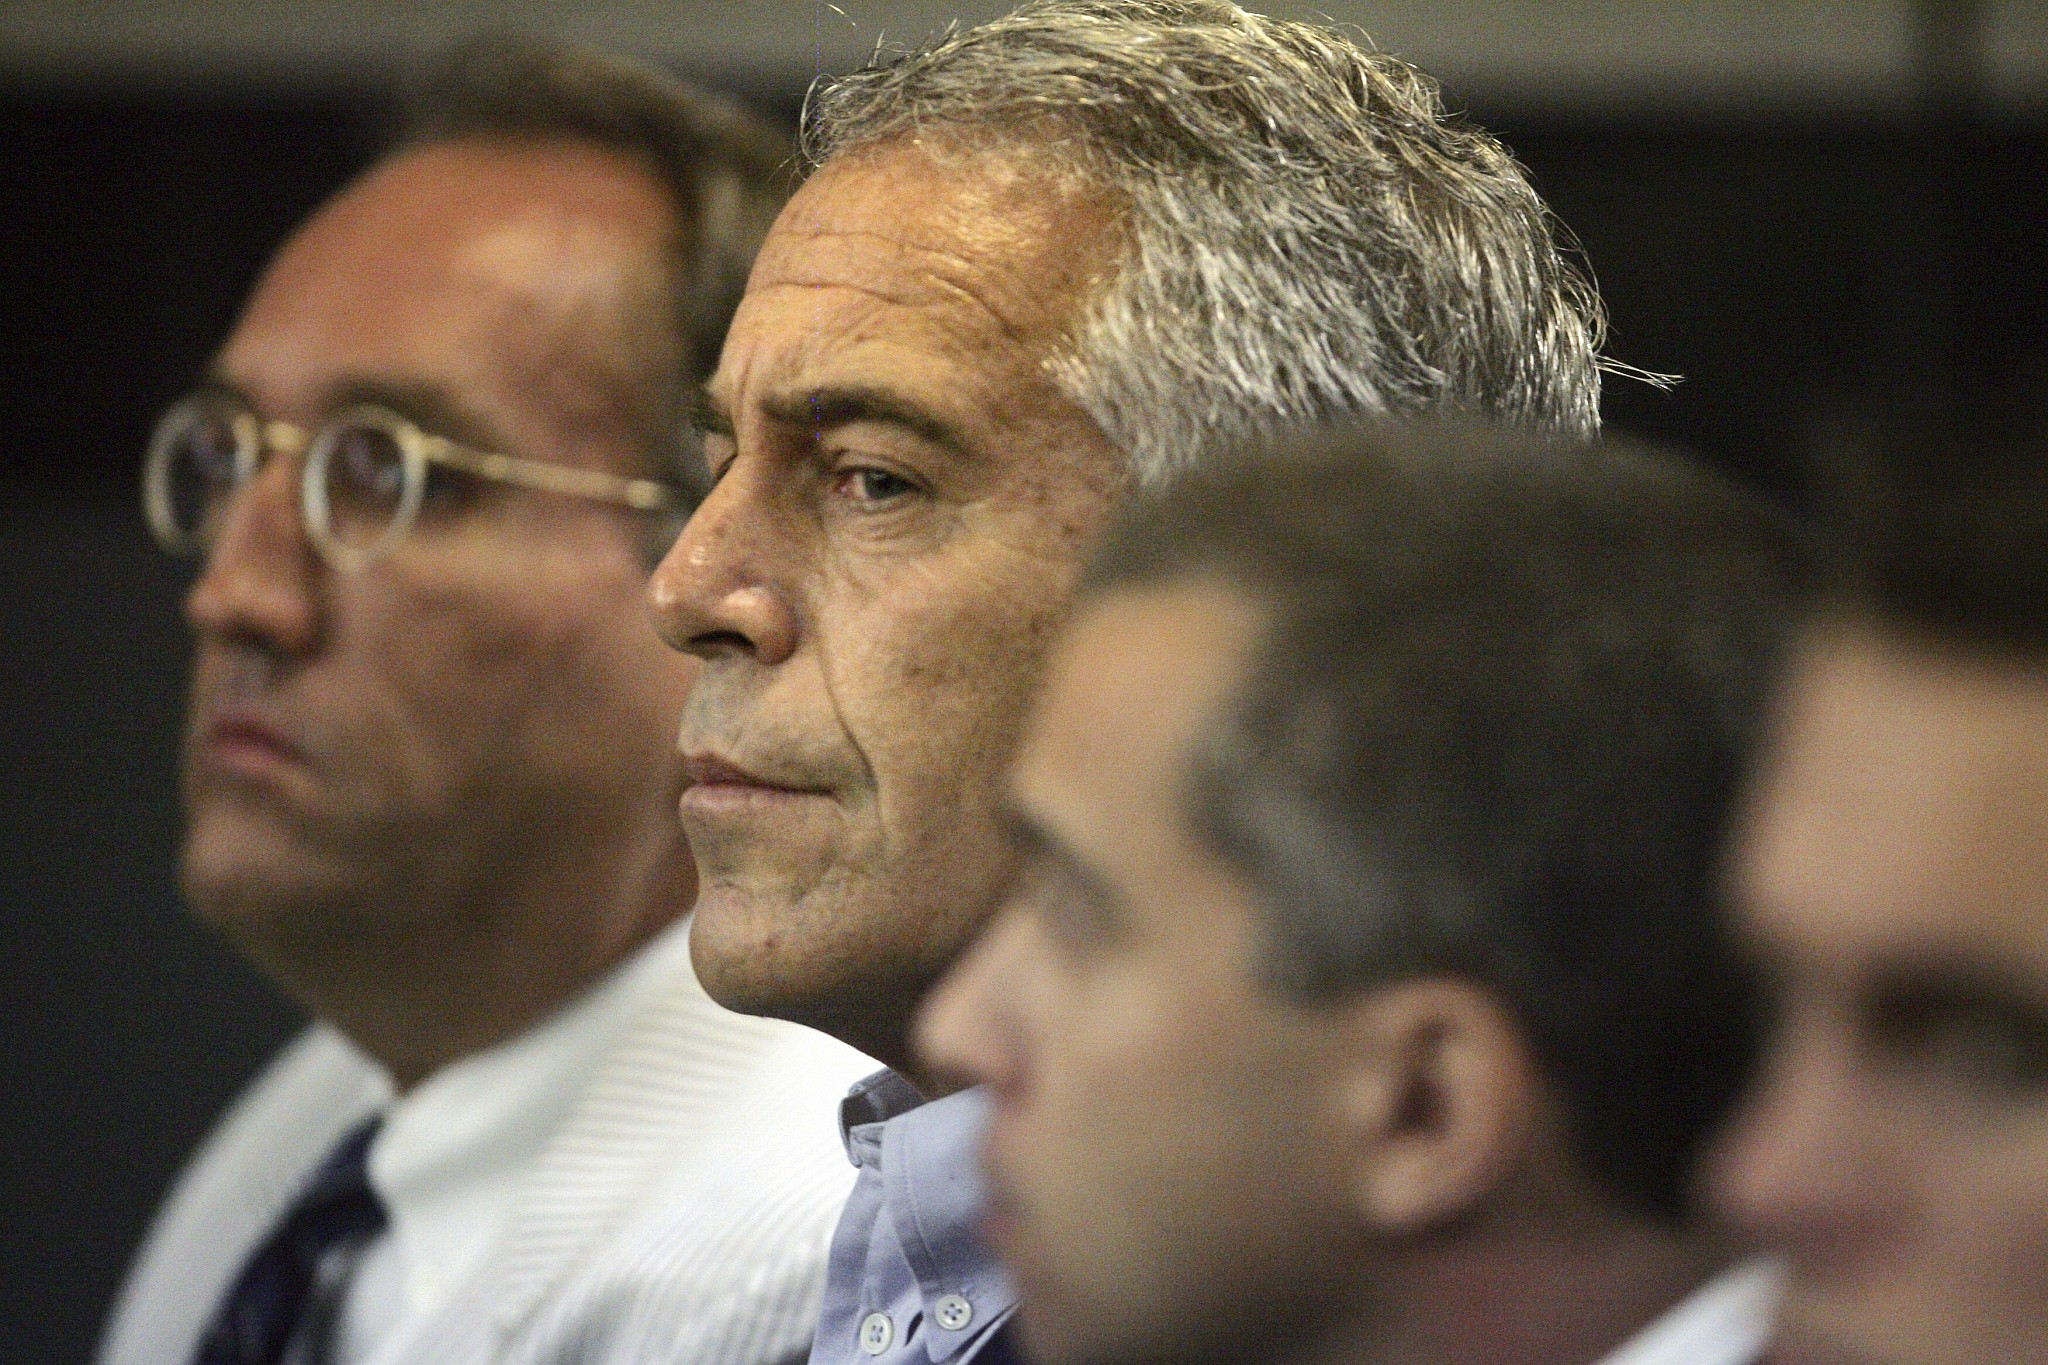 Billionaire Jeffrey Epstein charged with sex trafficking and conspiracy